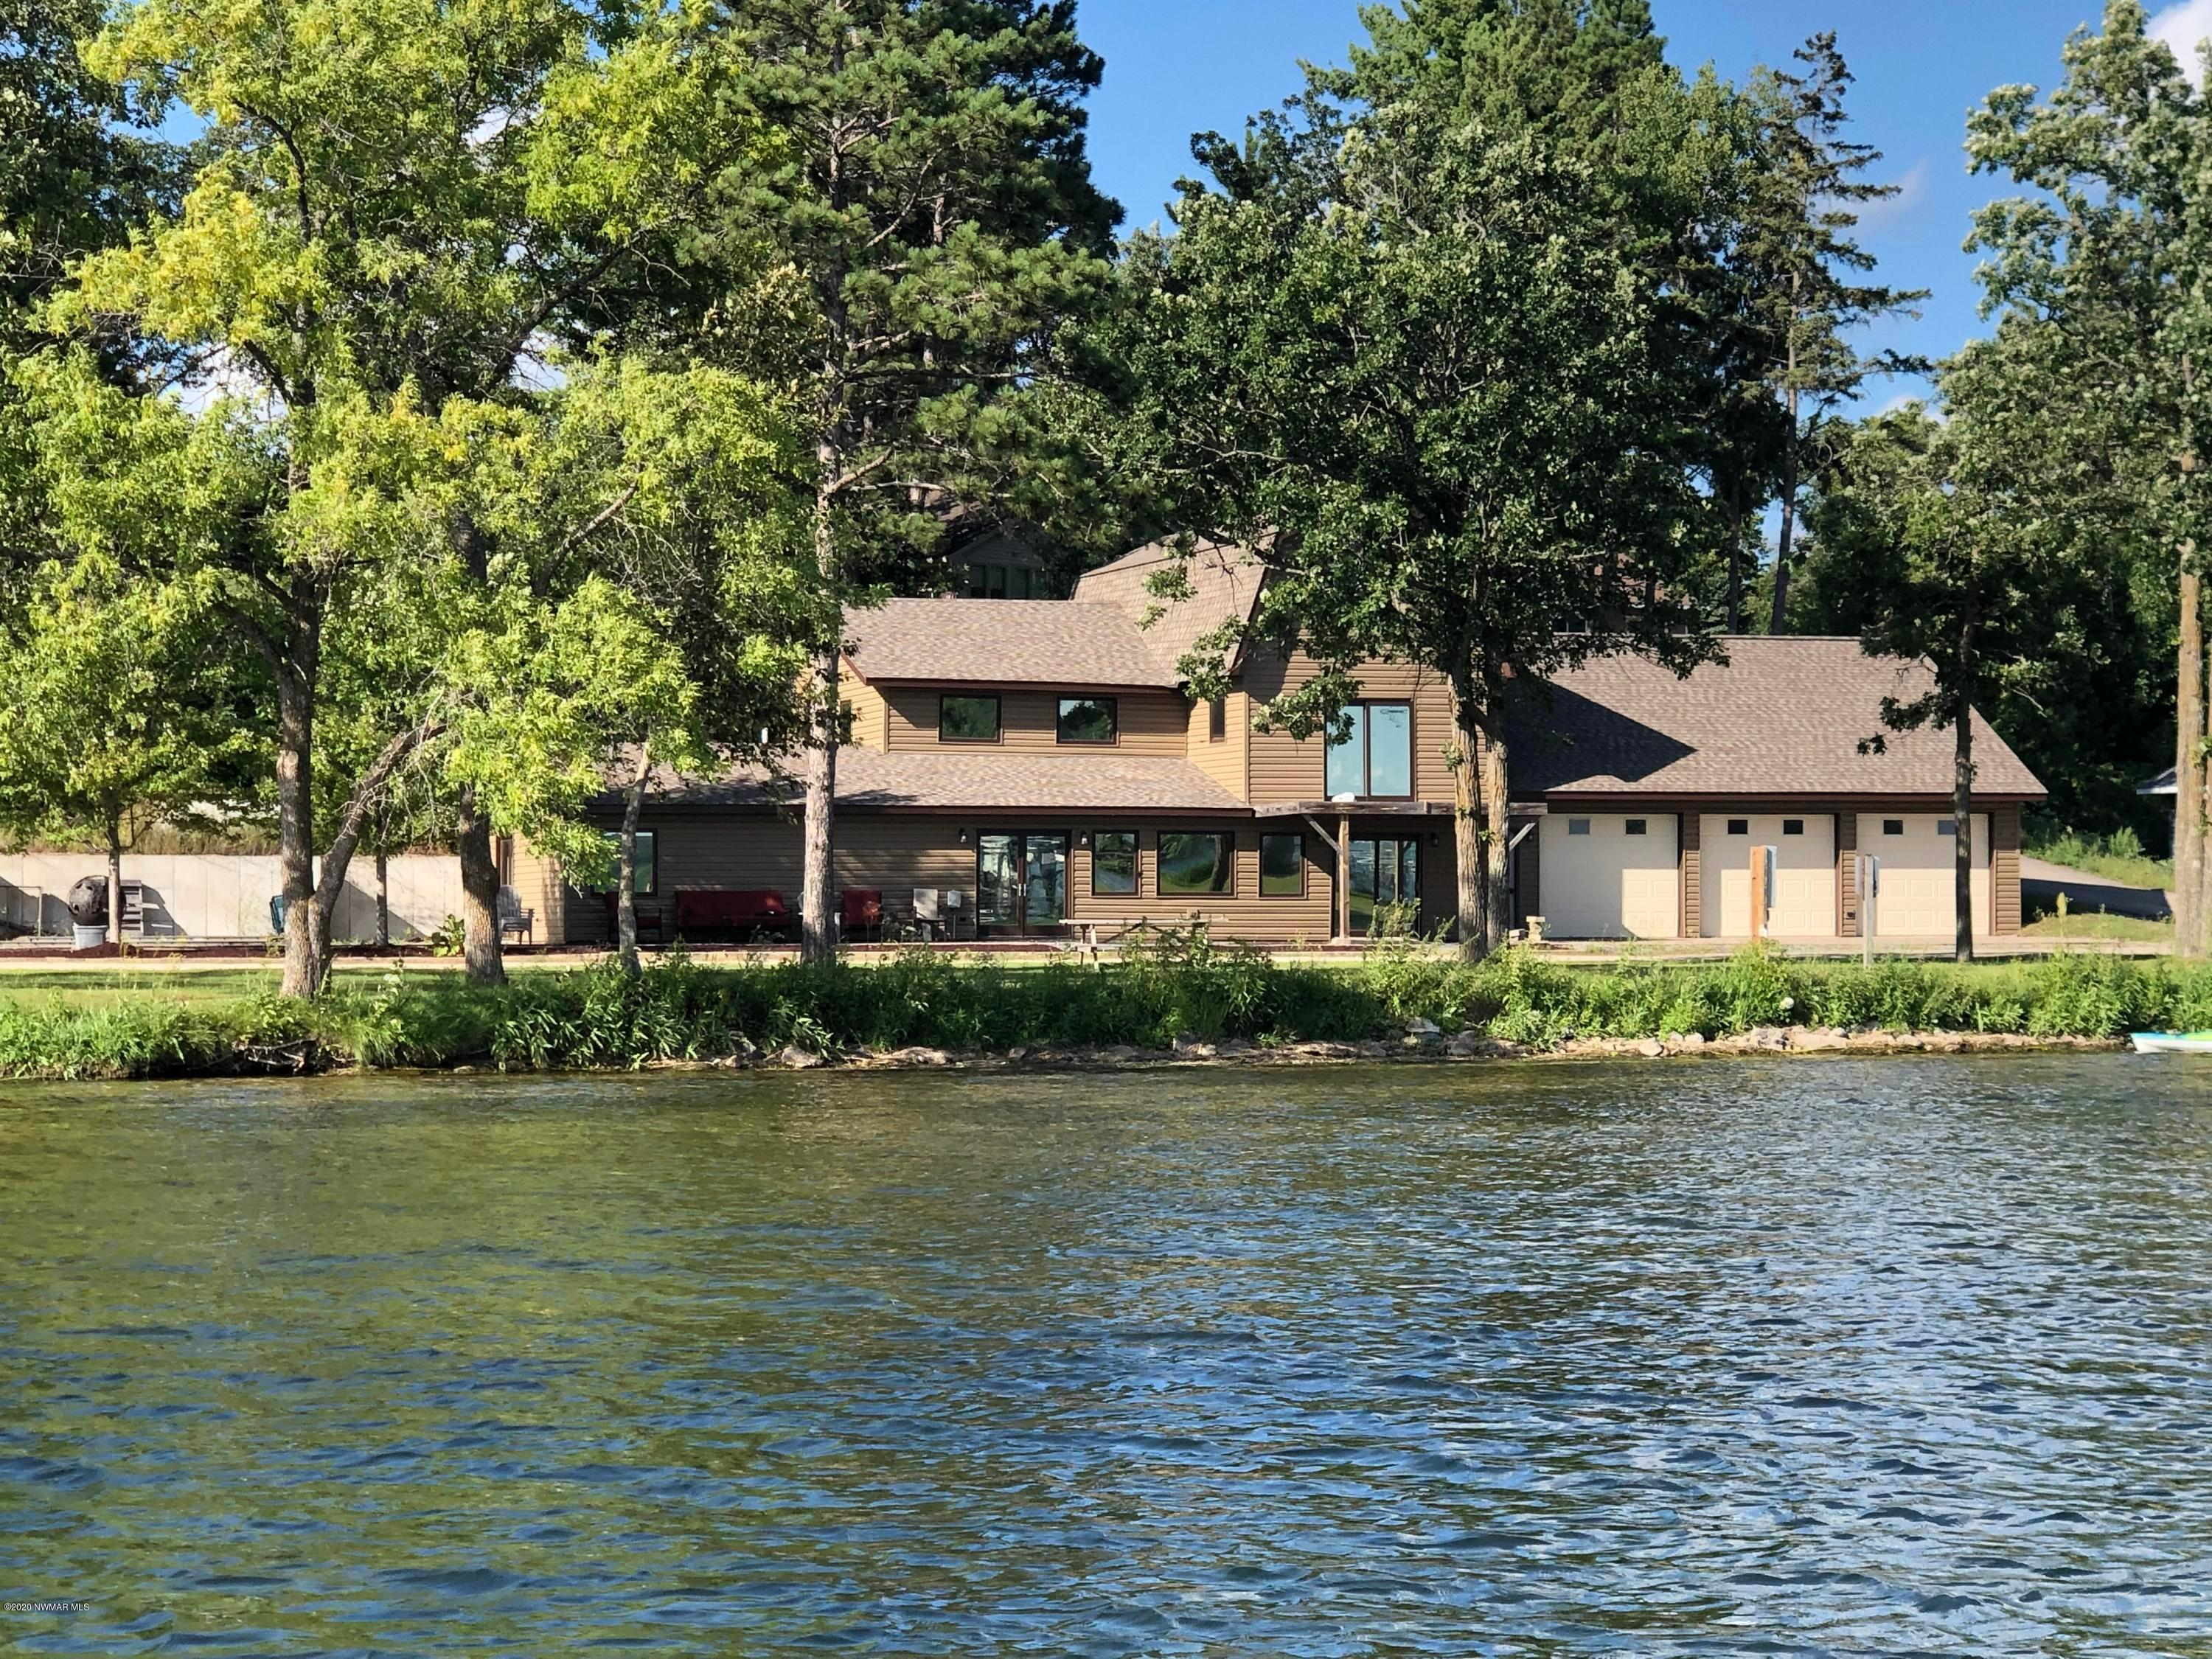 2235 Trees SE ##49 Property Photo - Cass Lake, MN real estate listing